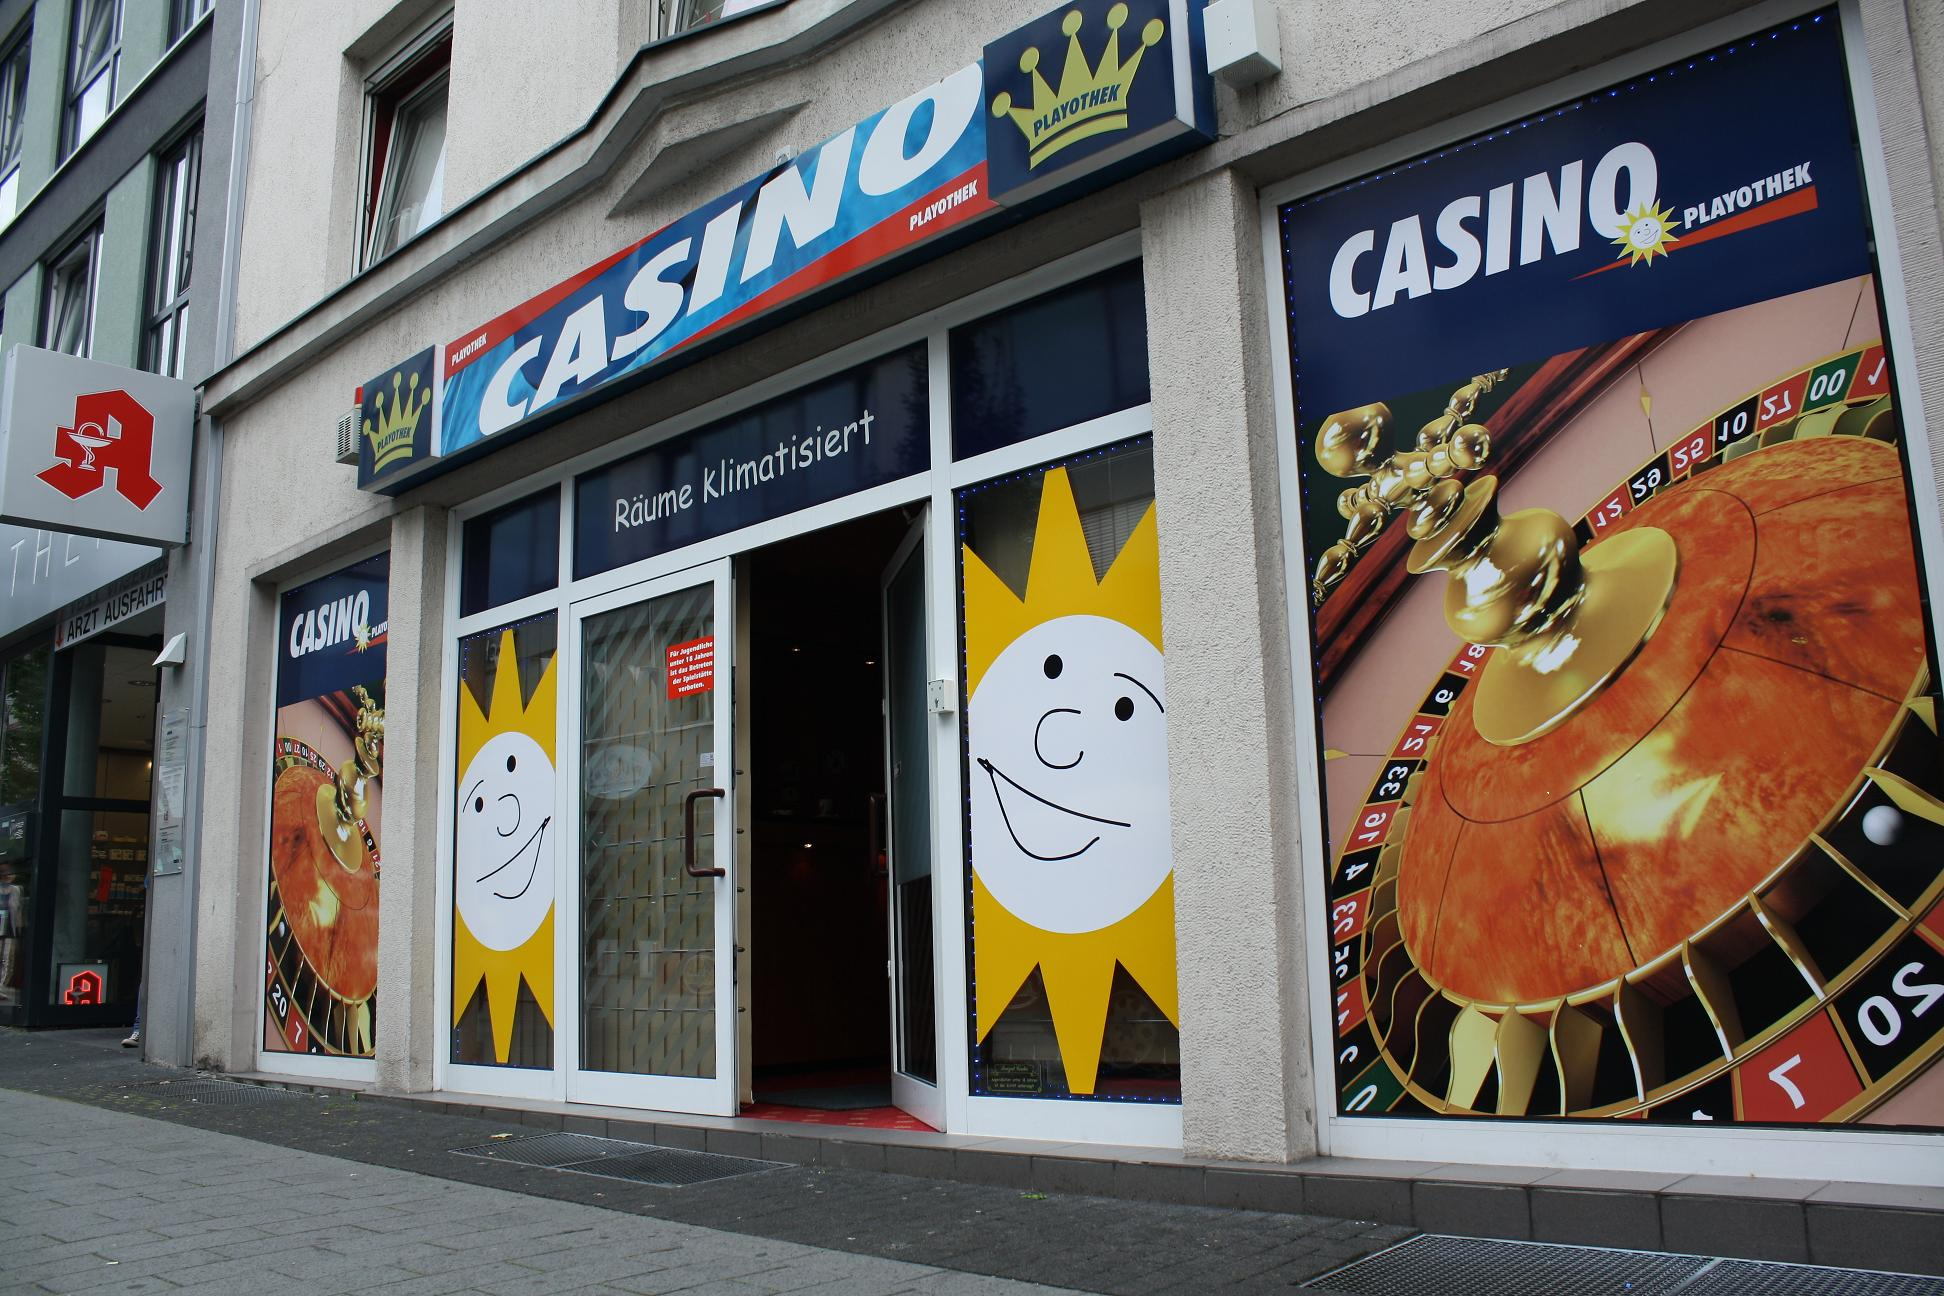 casino frankfurt poker